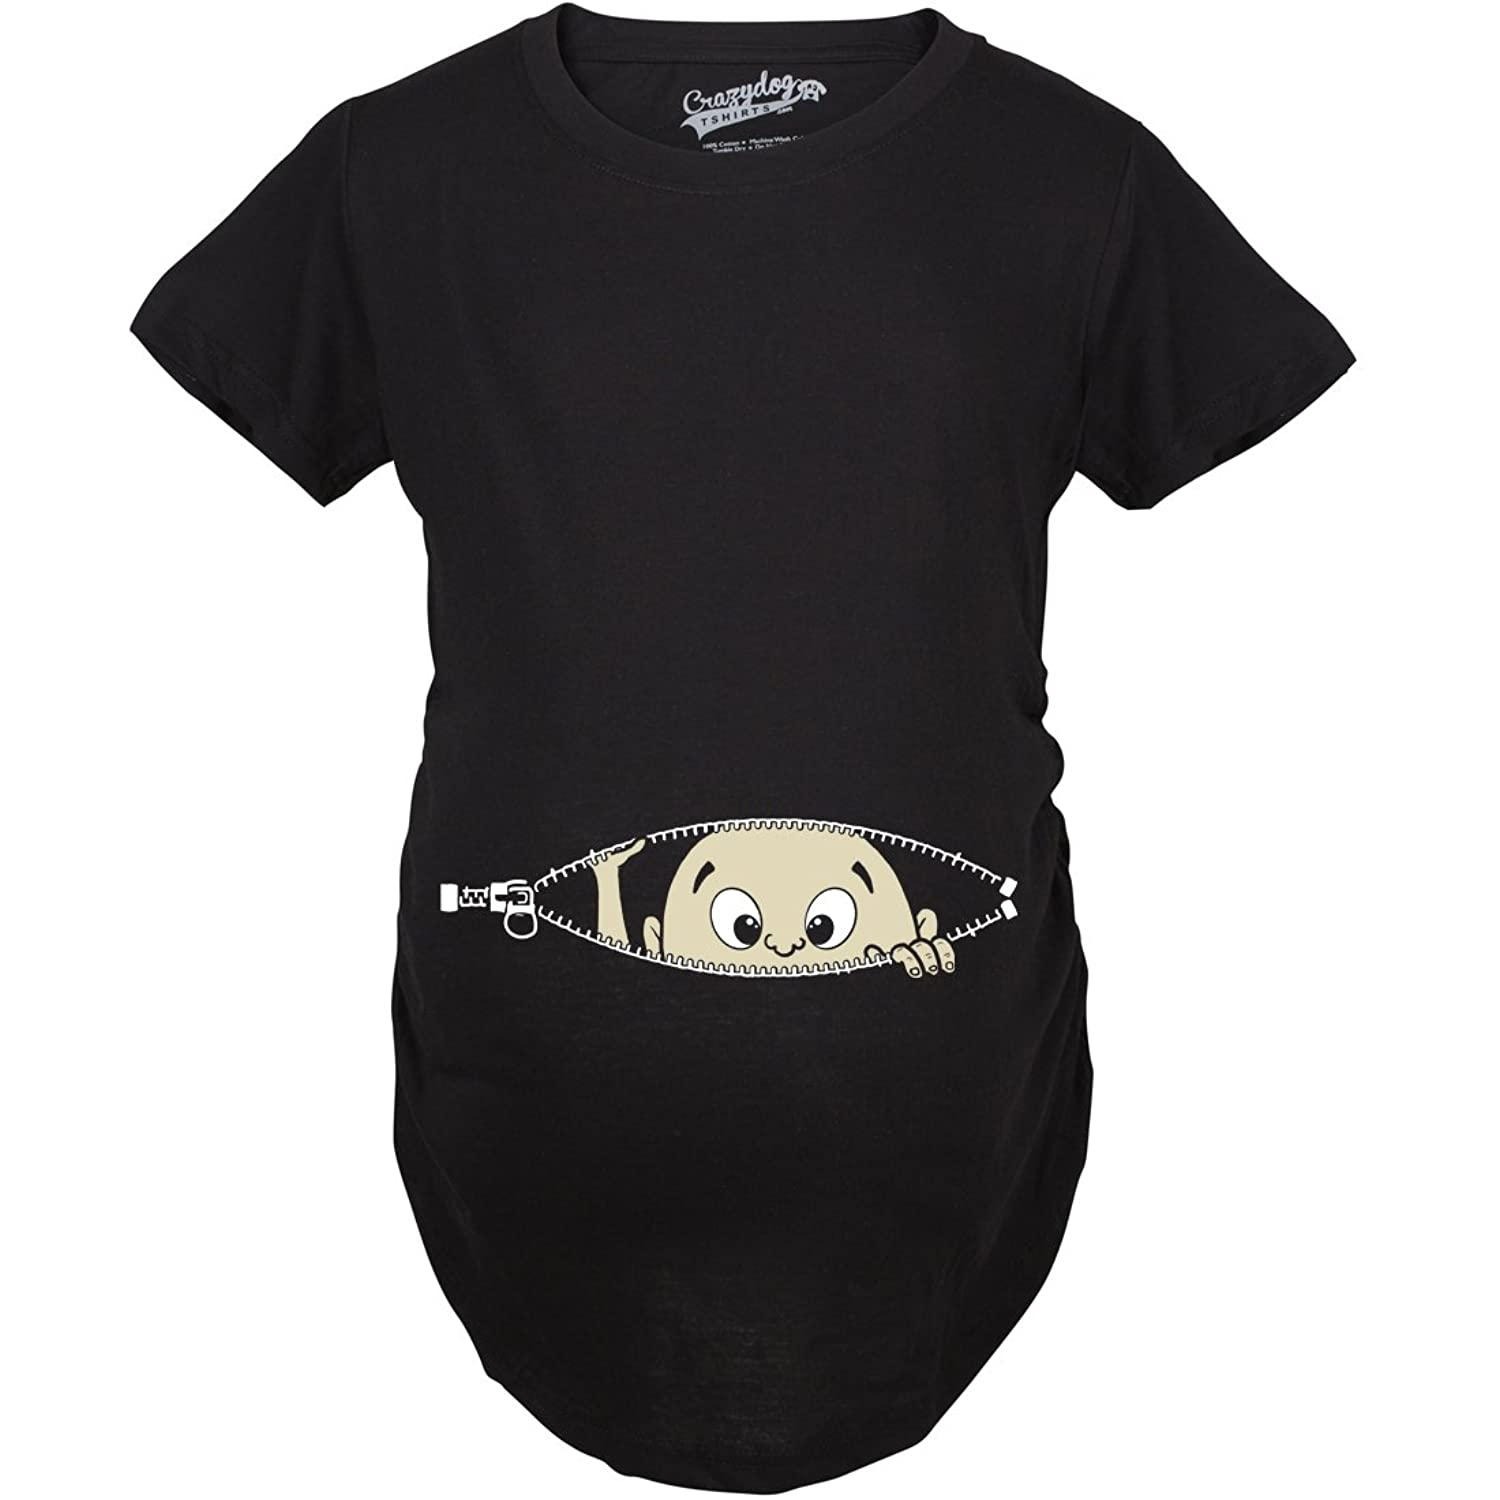 Black t shirt for babies - Maternity Baby Peeking T Shirt Funny Pregnancy Tee For Expecting Mothers Amazon Co Uk Clothing